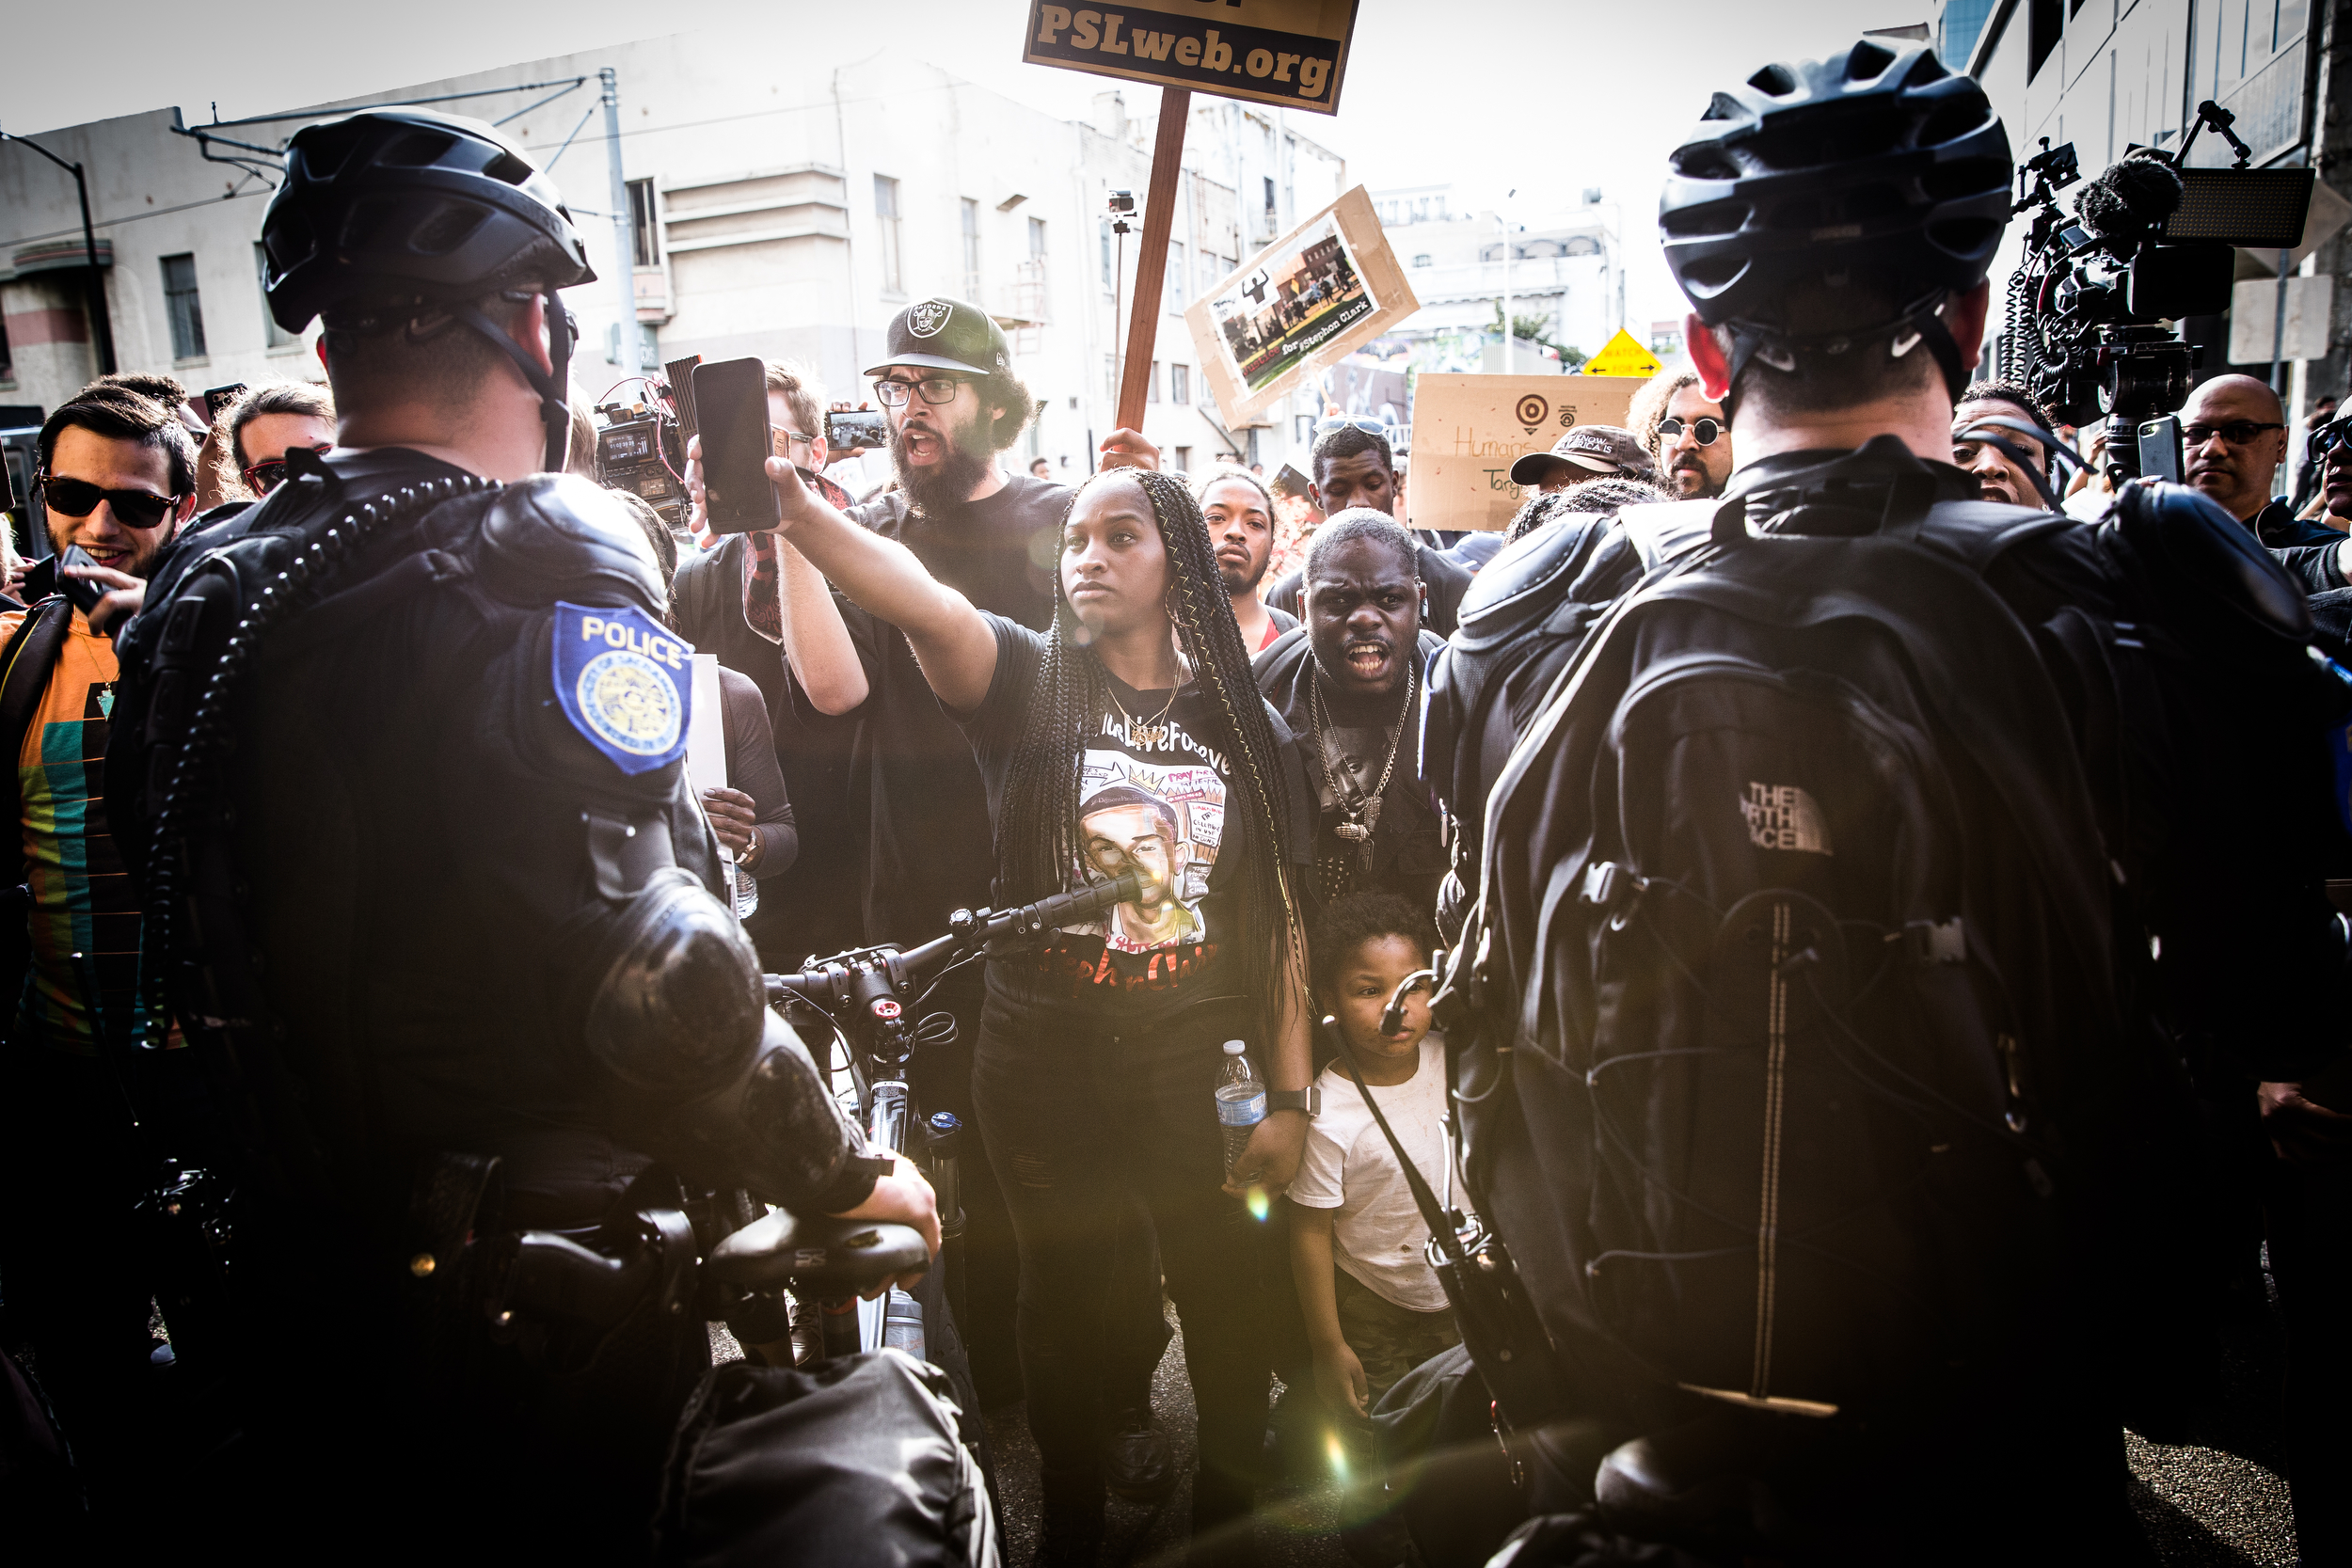 Black Lives Matter protestors confront police in downtown Sacramento on March 29, 2018. Stephon Clark was shot and killed by two Sacramento police officers in his grandmother's backyard while they investigated a vandalism complaint. Since his death, Sacramentans have protested against local enforcement.